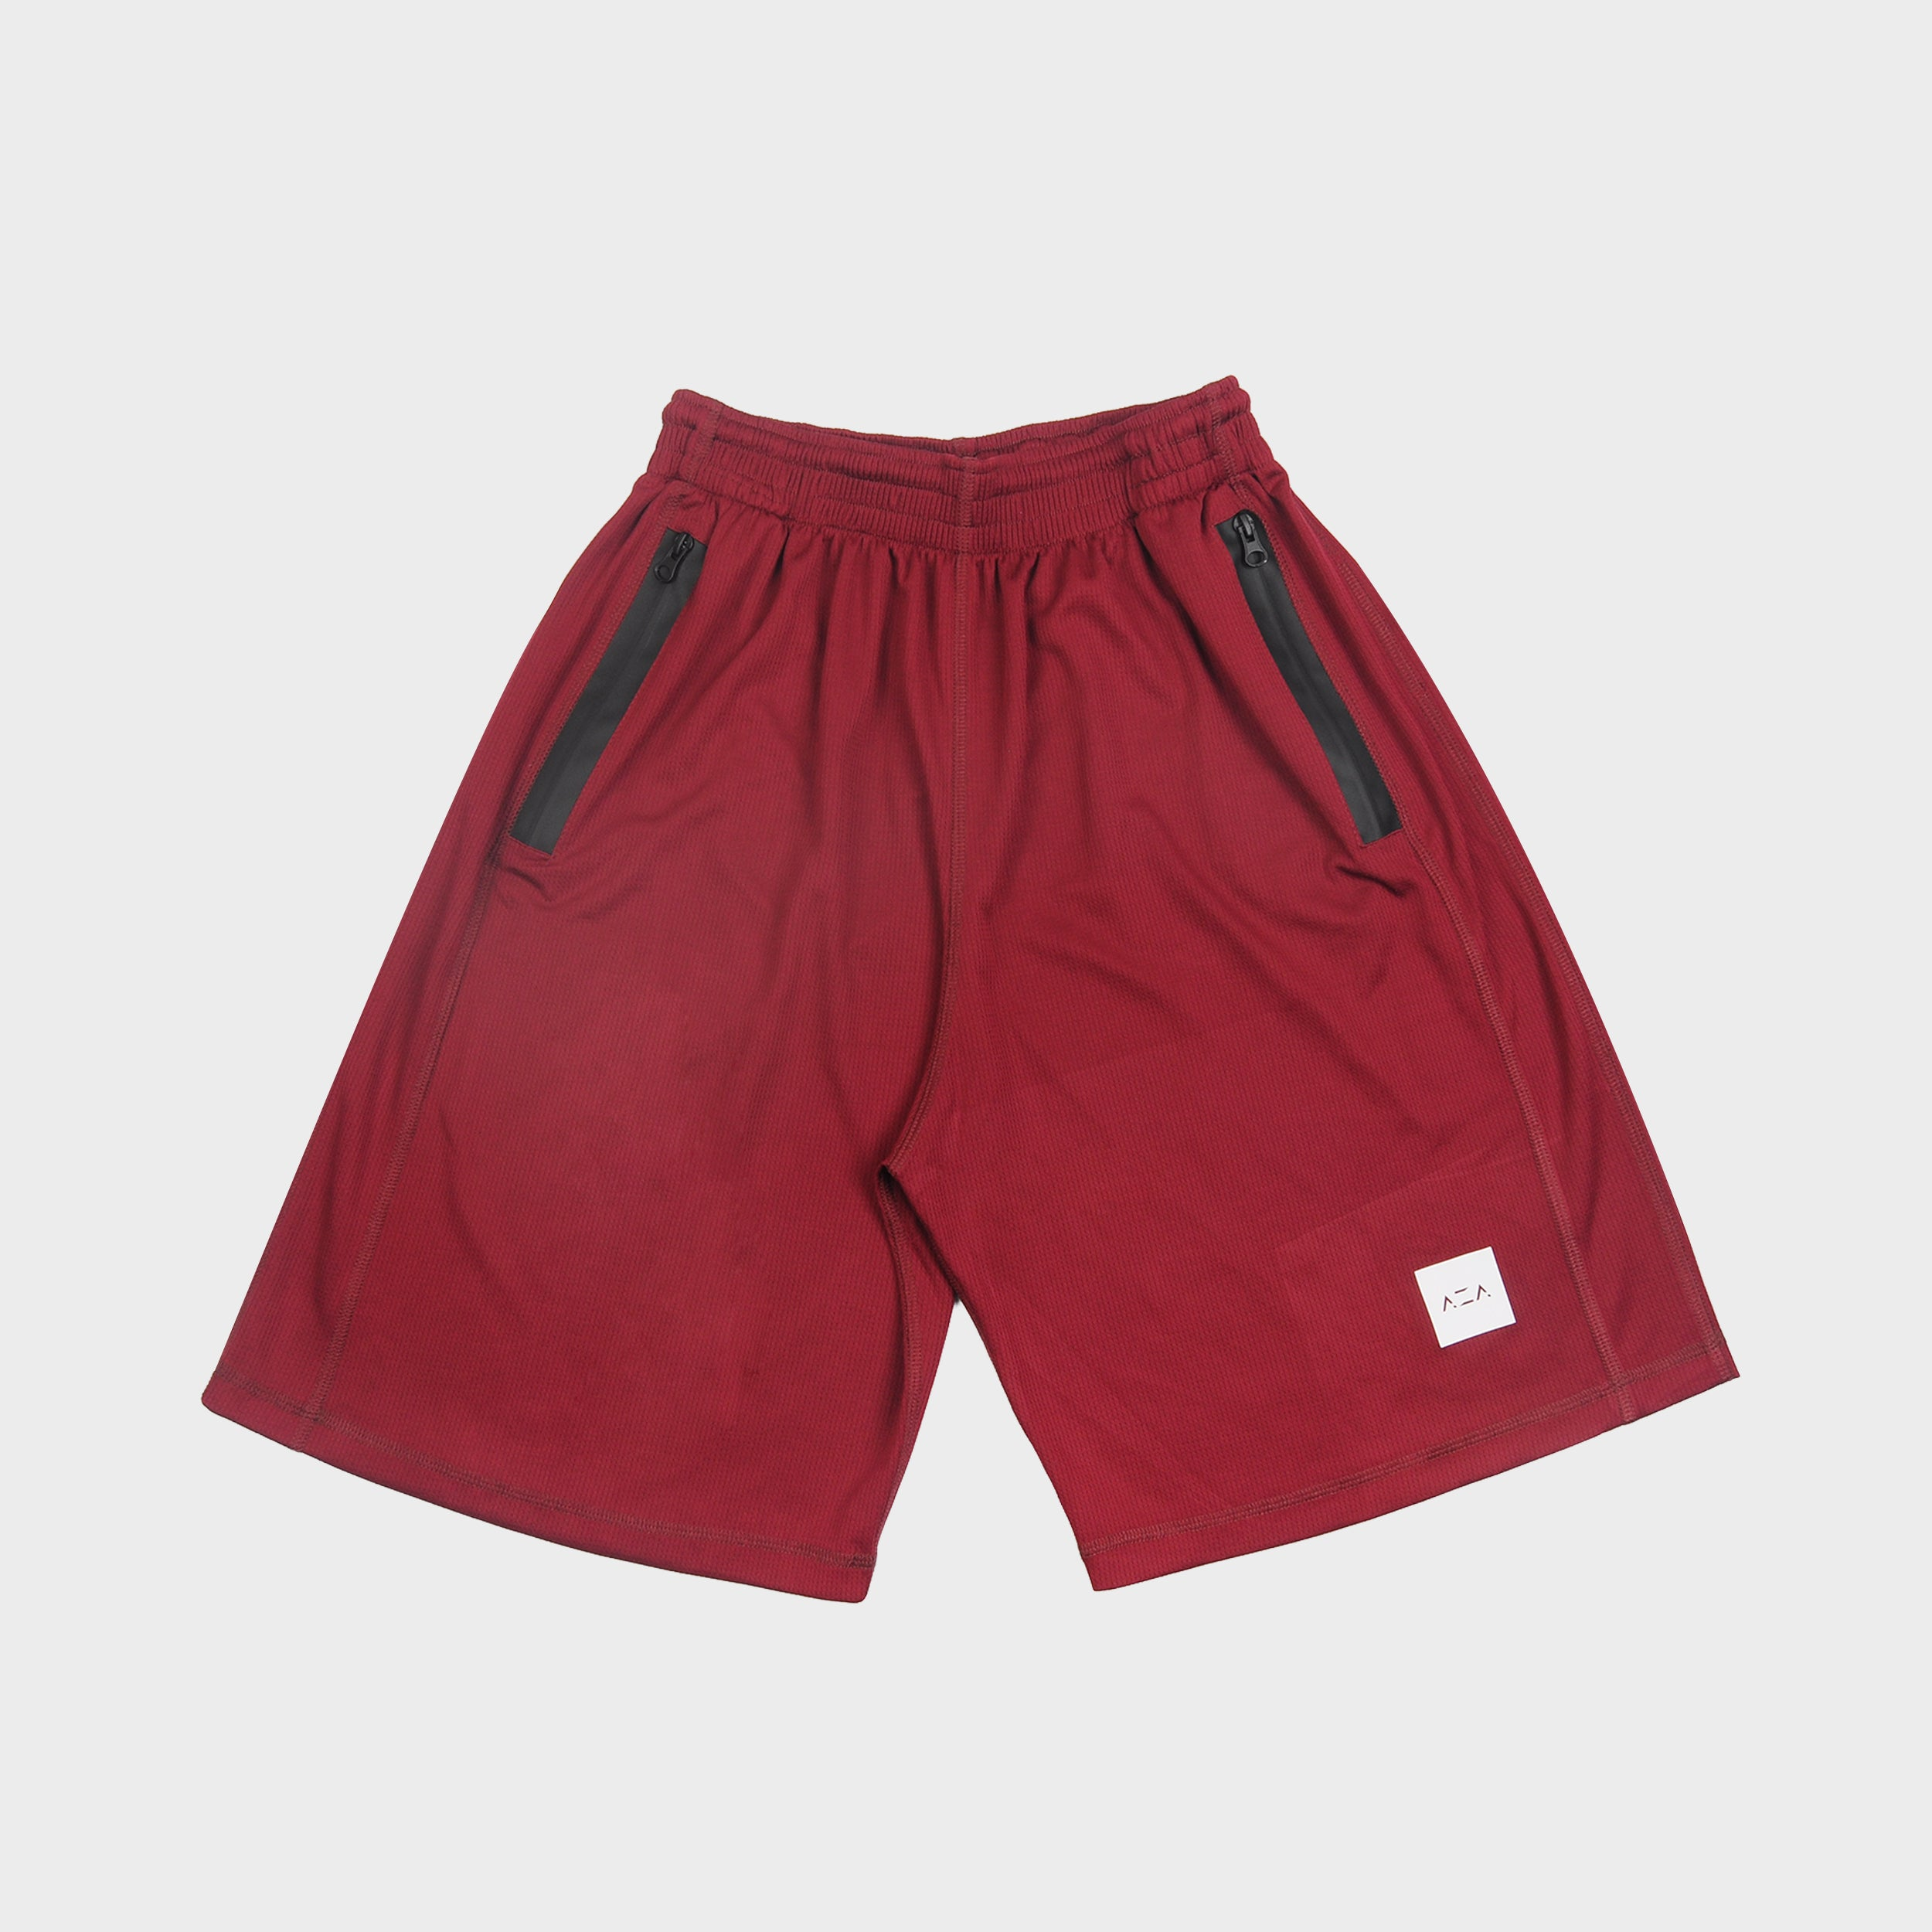 AZA Essential Short - Maroon